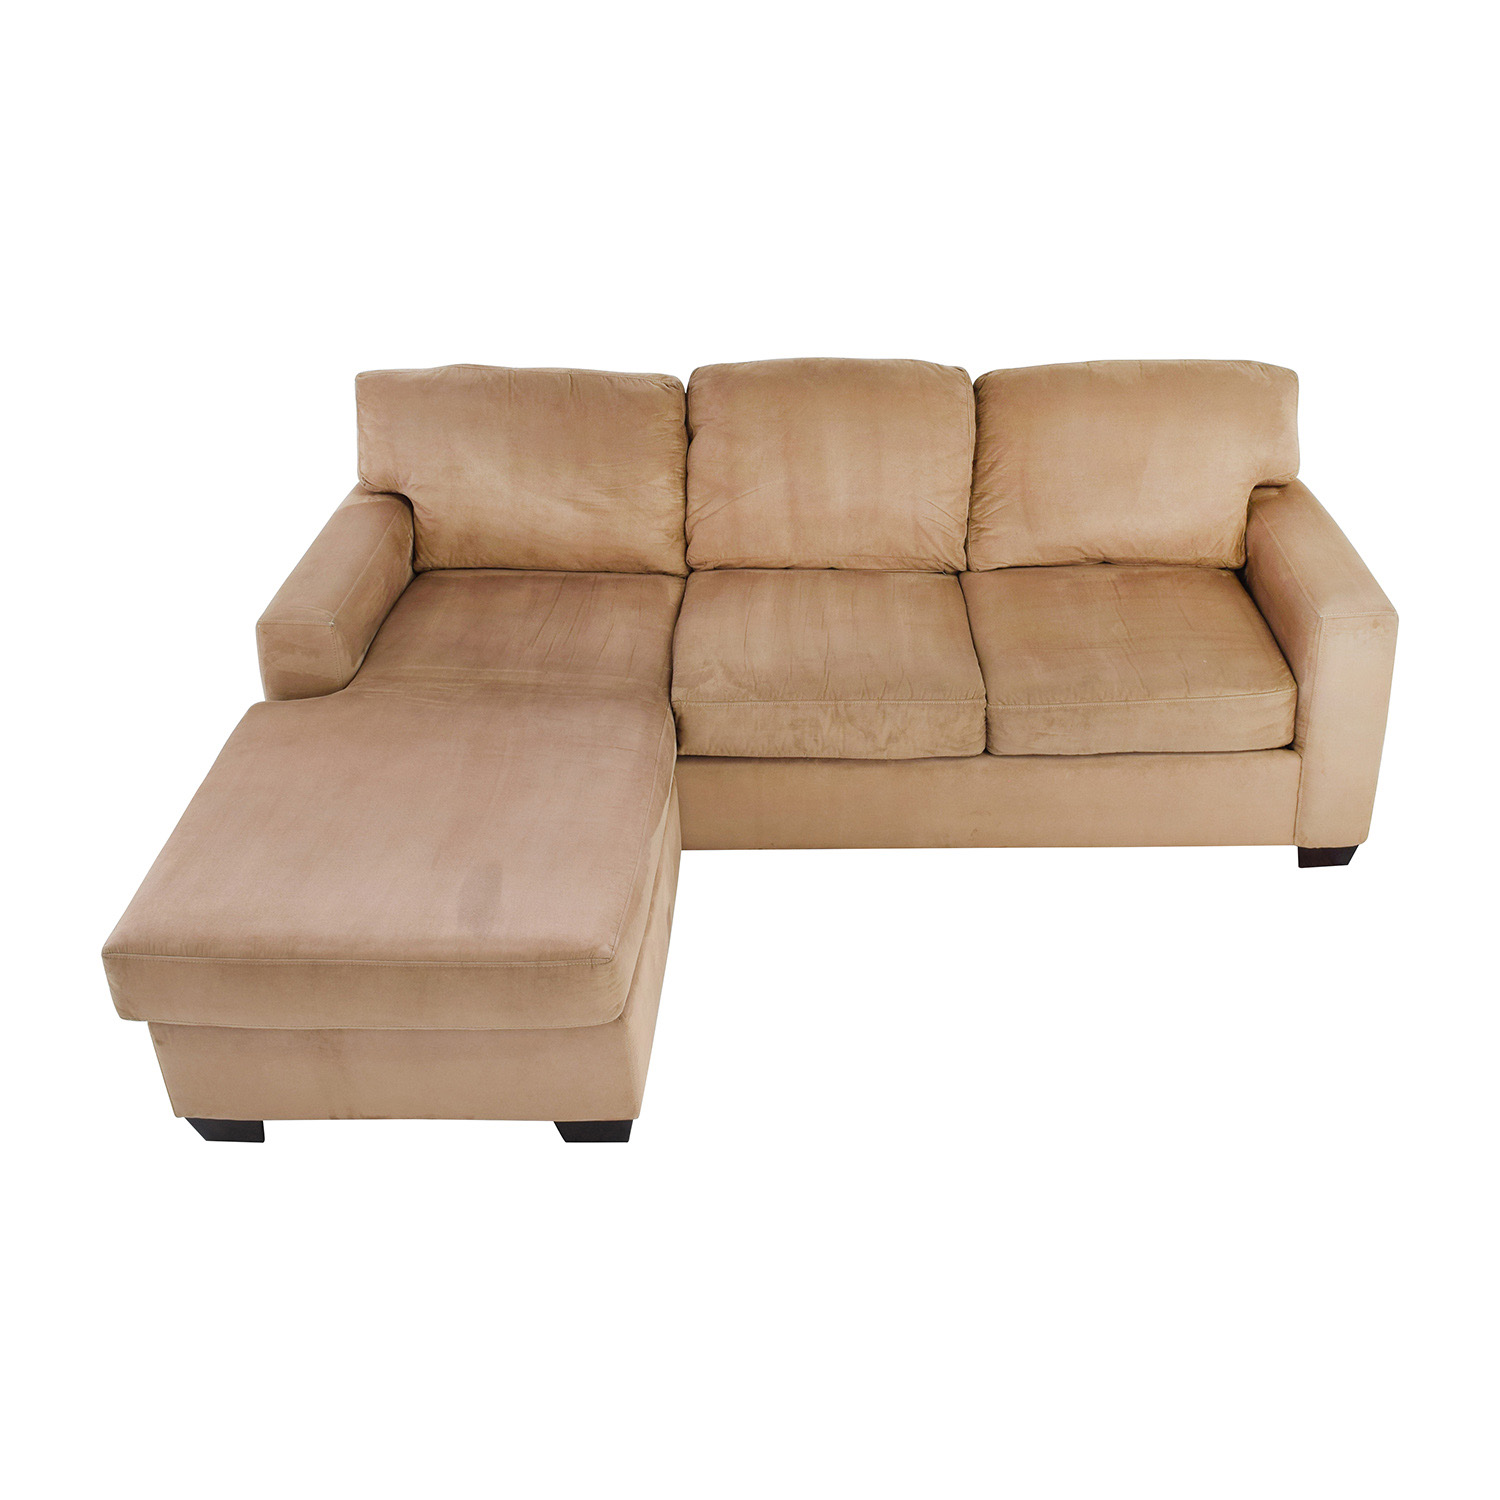 Max Home Tan Sectional Chaise Sofa Max Home